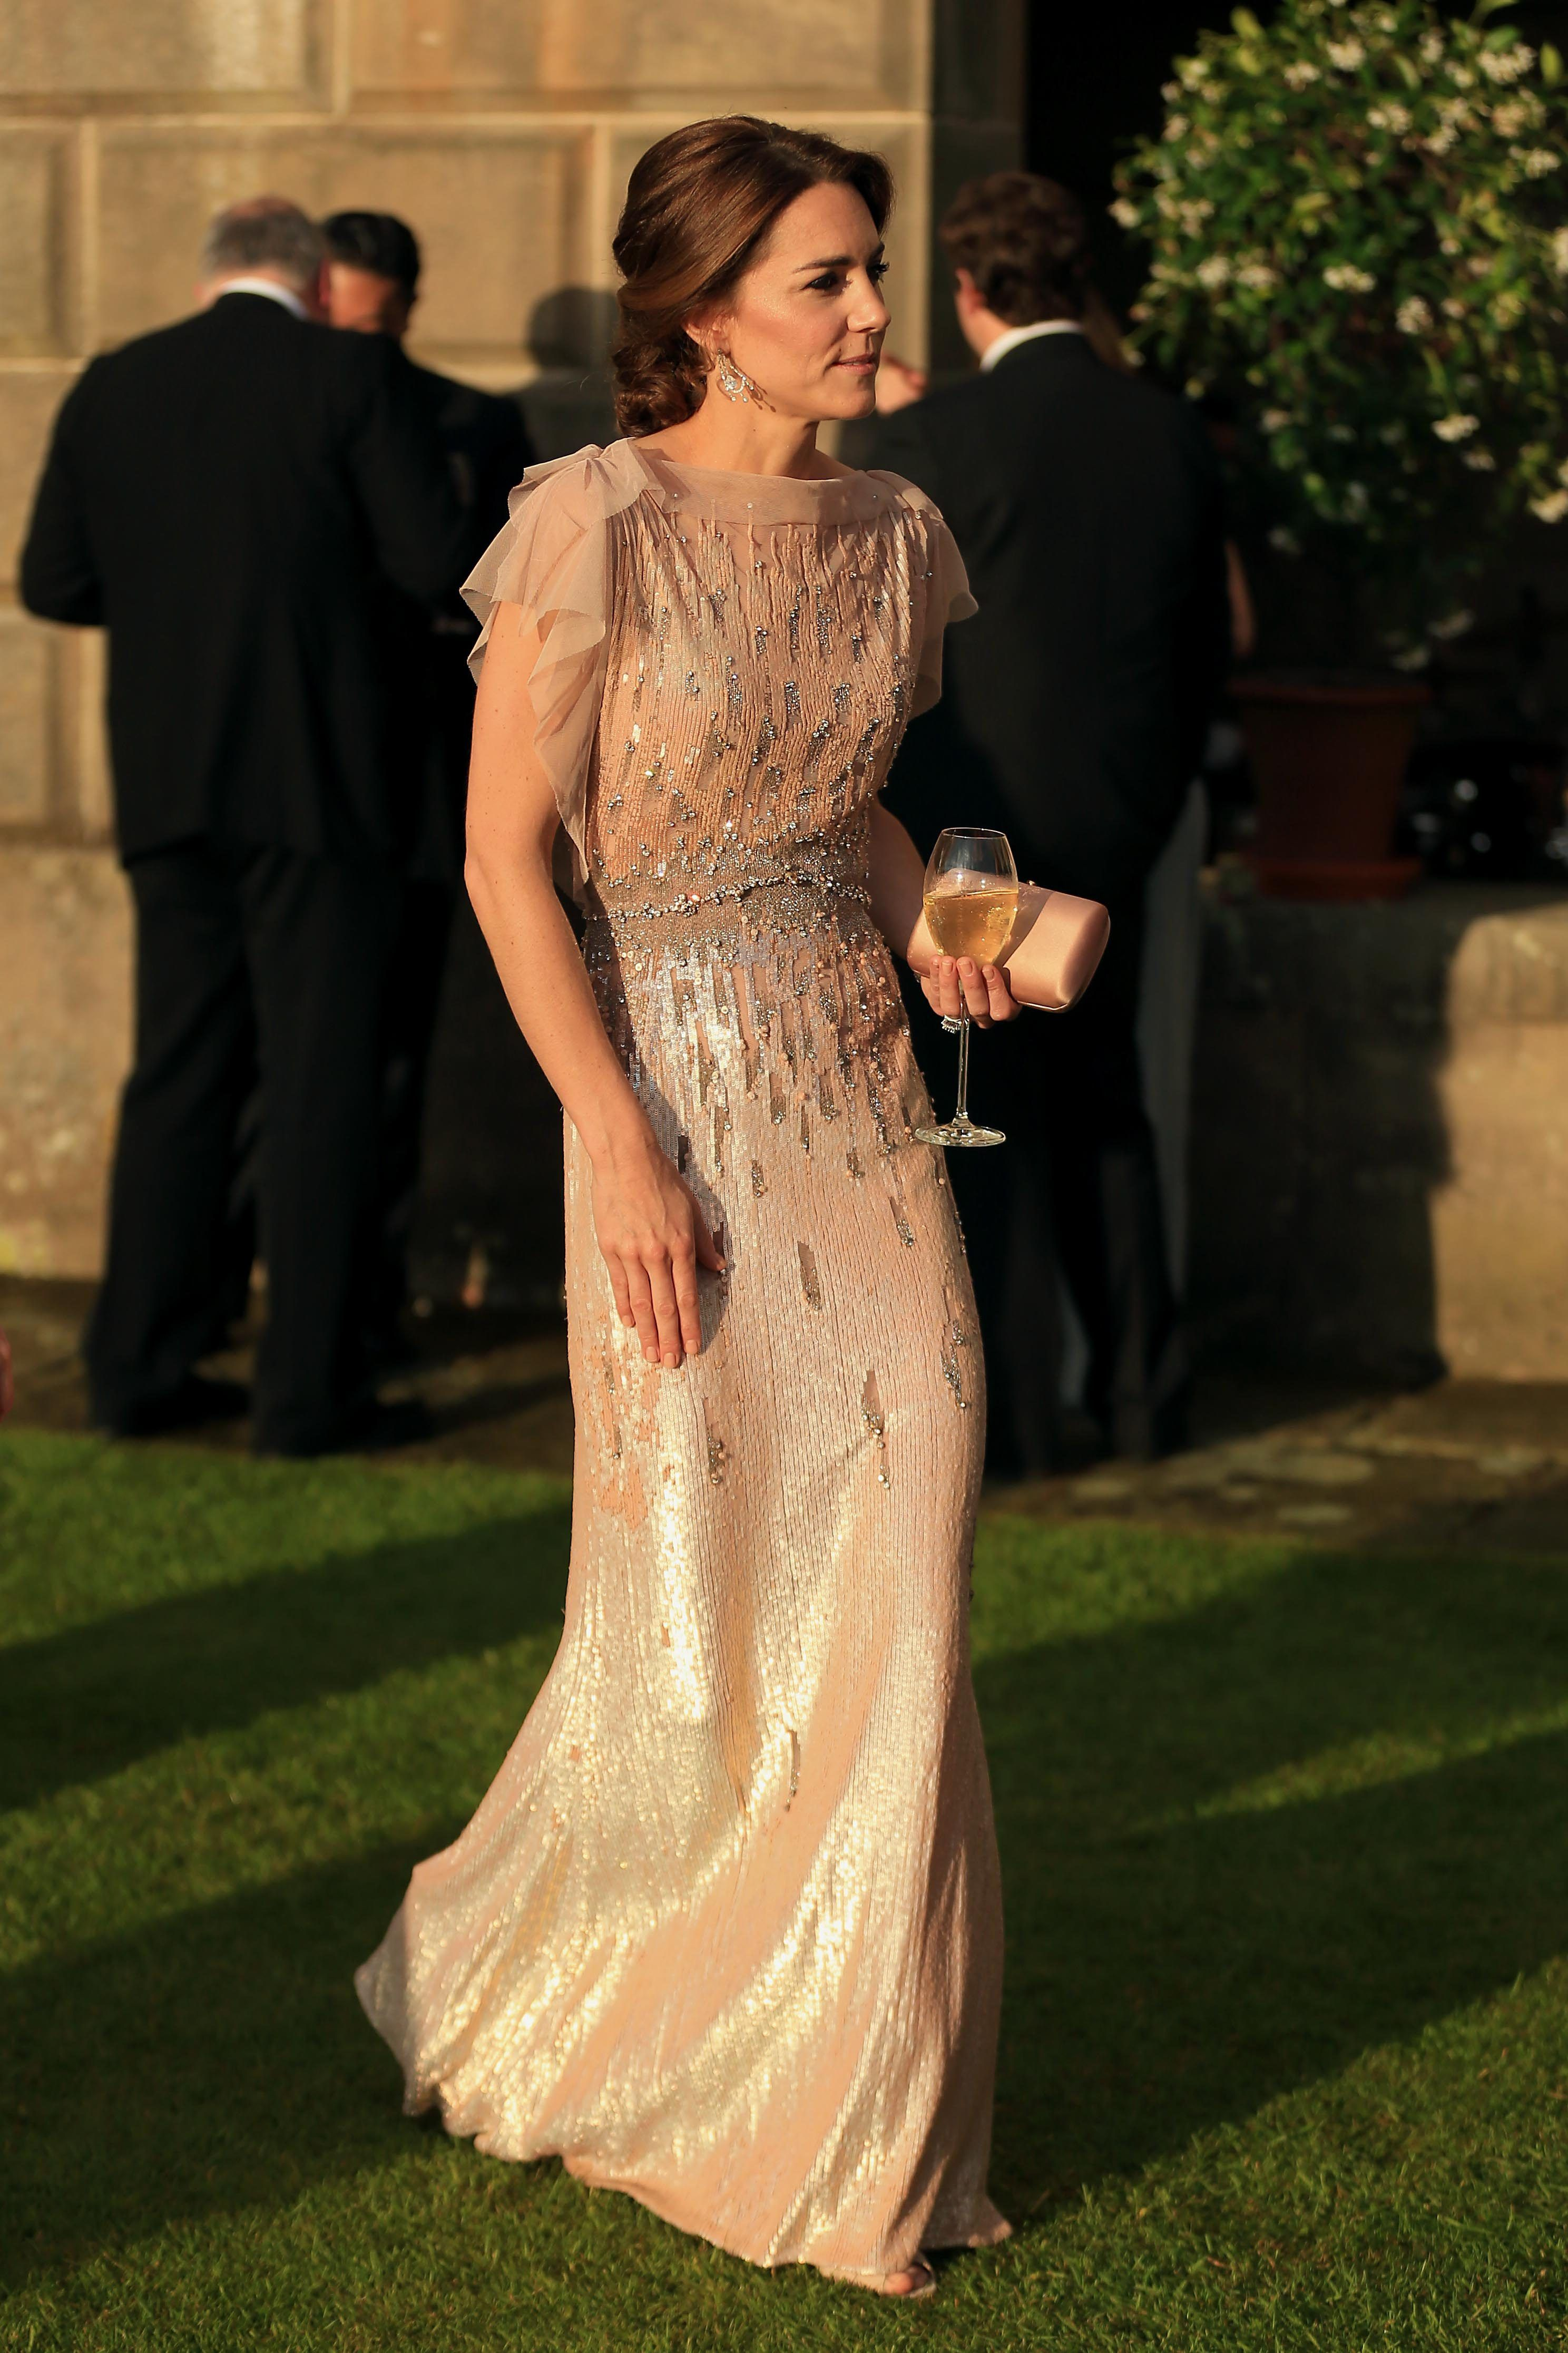 Abiti Eleganti Kate Middleton.Kate Middleton Cena Di Gala Jenny Packham Principessa Kate